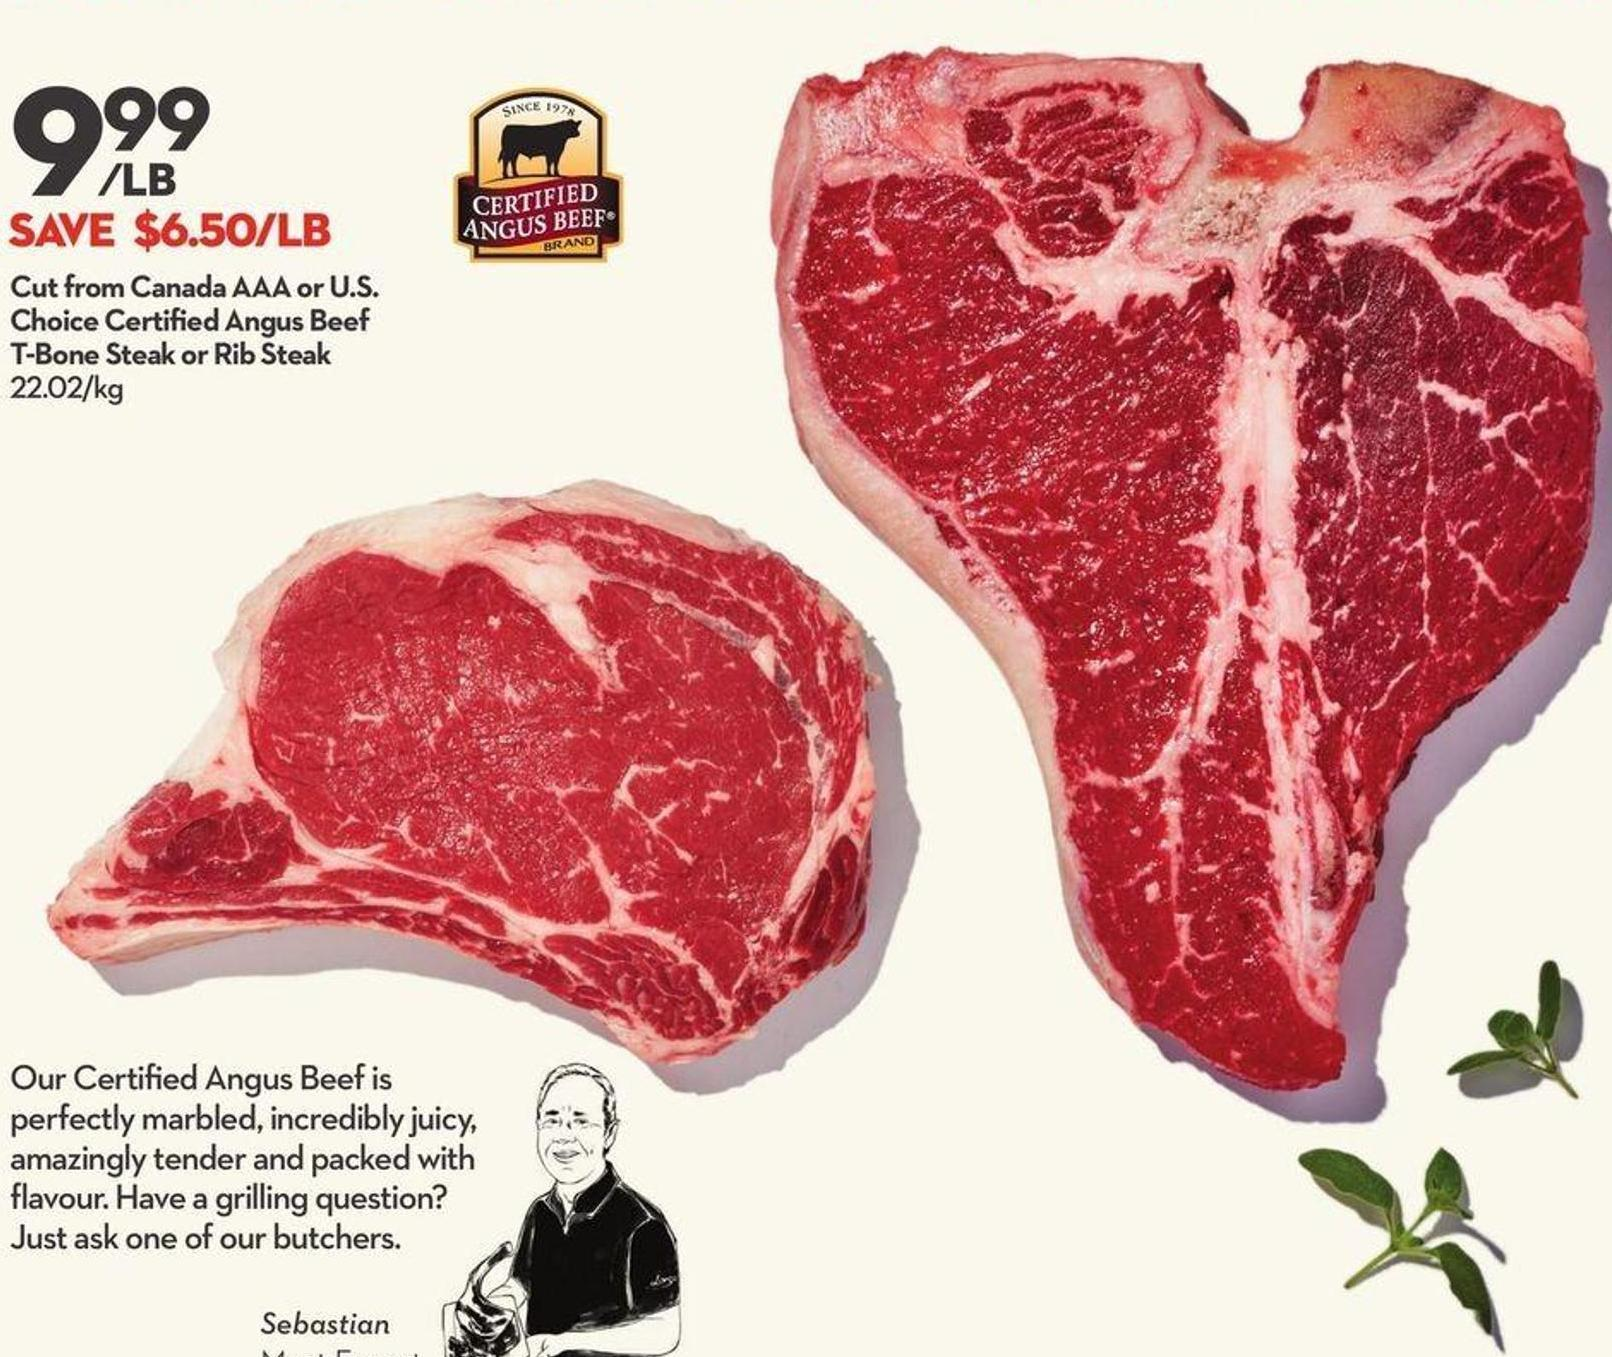 Cut From Canada Aaa or U.s. Choice Certified Angus Beef T-bone Steak or Rib Steak